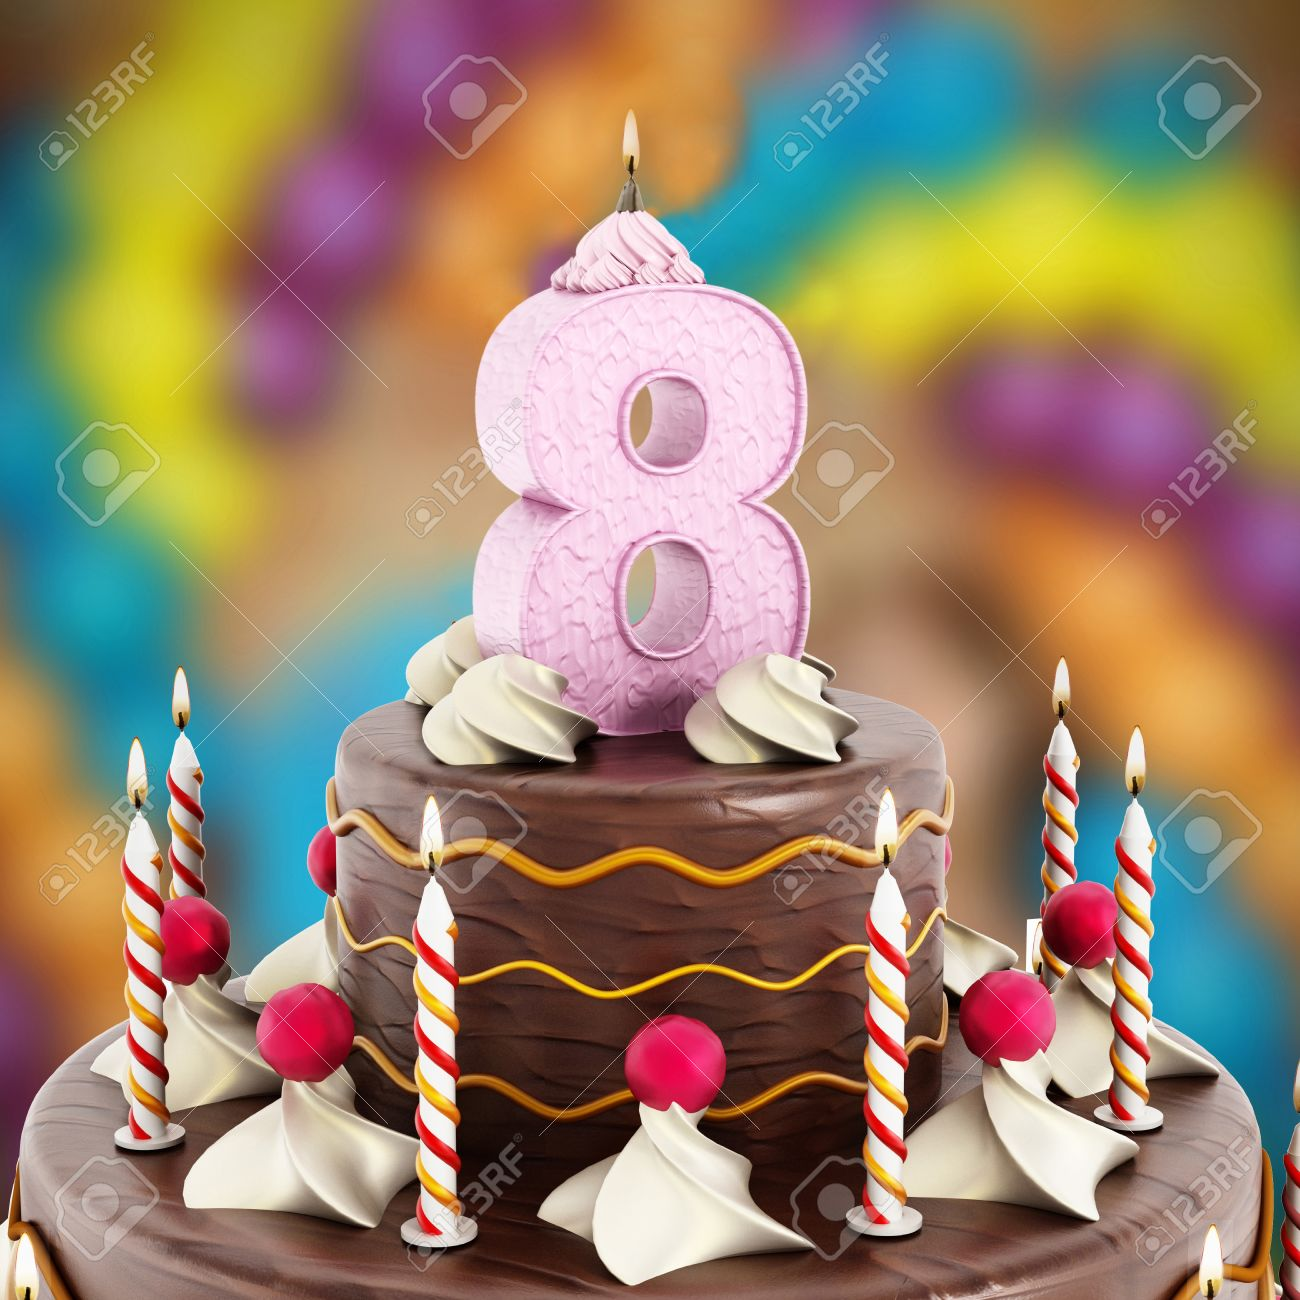 Birthday Cake With Number 8 Lit Candle Stock Photo